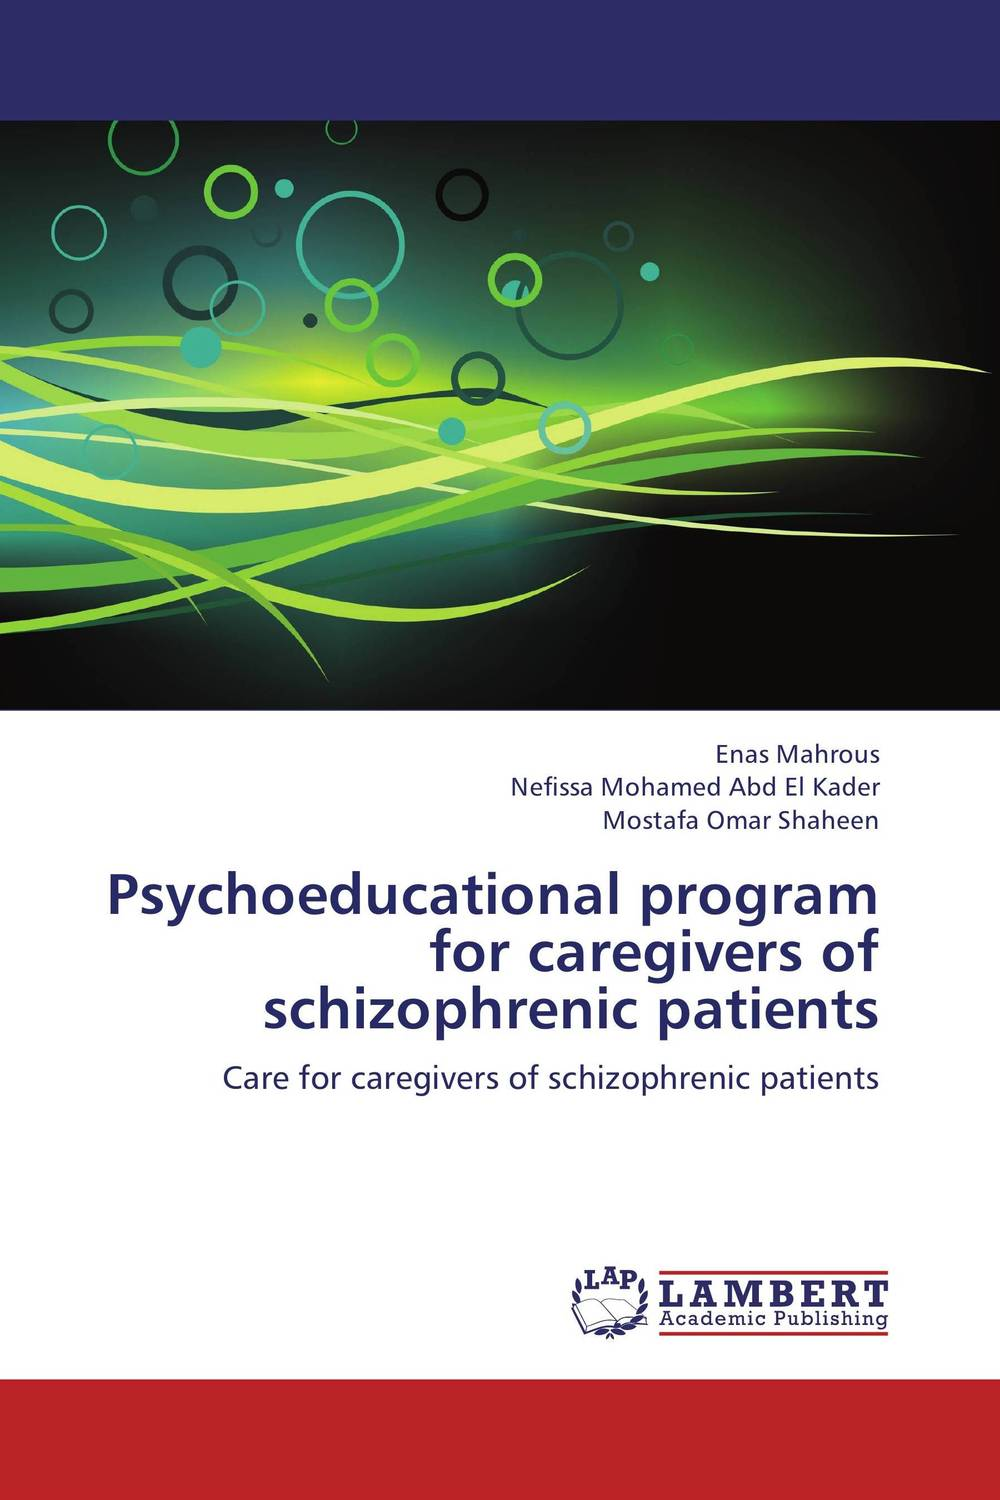 Psychoeducational program for caregivers of schizophrenic patients leila moraa geteri dan kaseje and stephen okeyo self care among caregivers